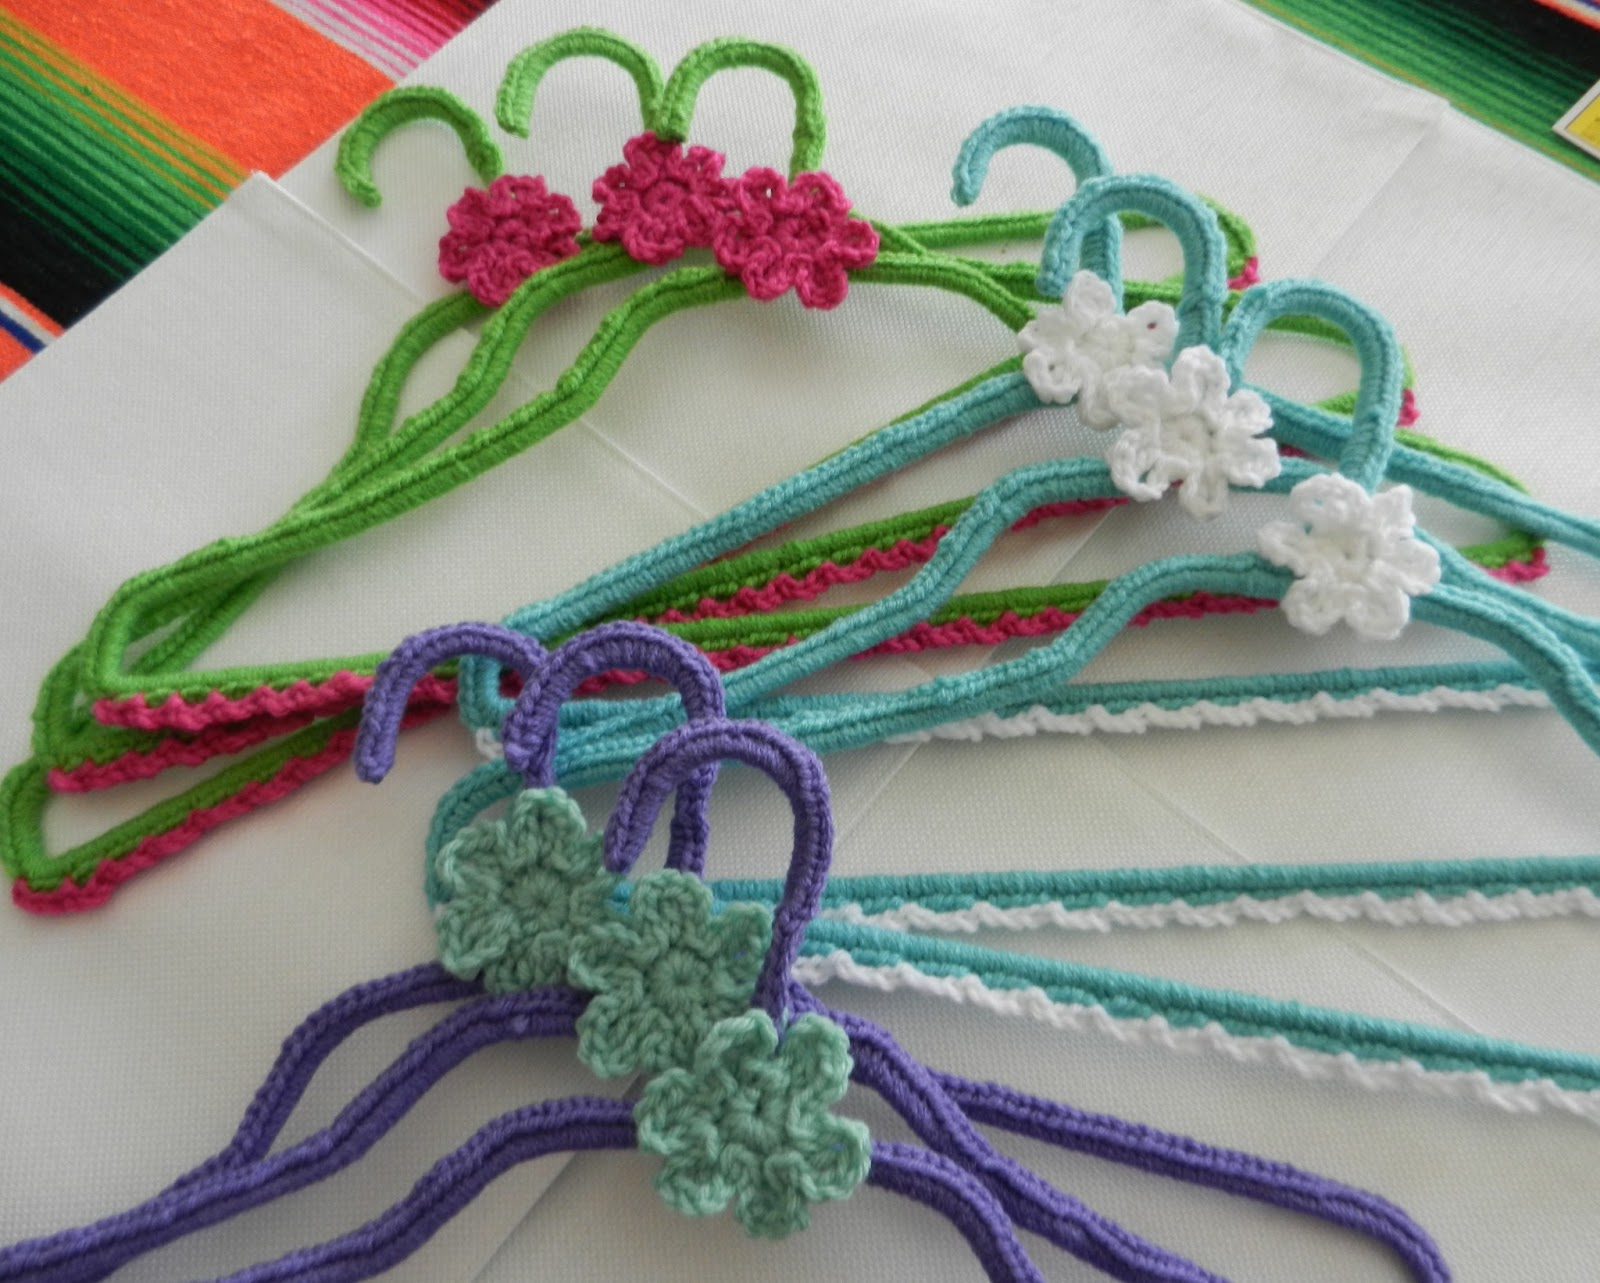 Crocheting On A Hanger : ... just crocheting around hangers so if you can crochet, you can do it